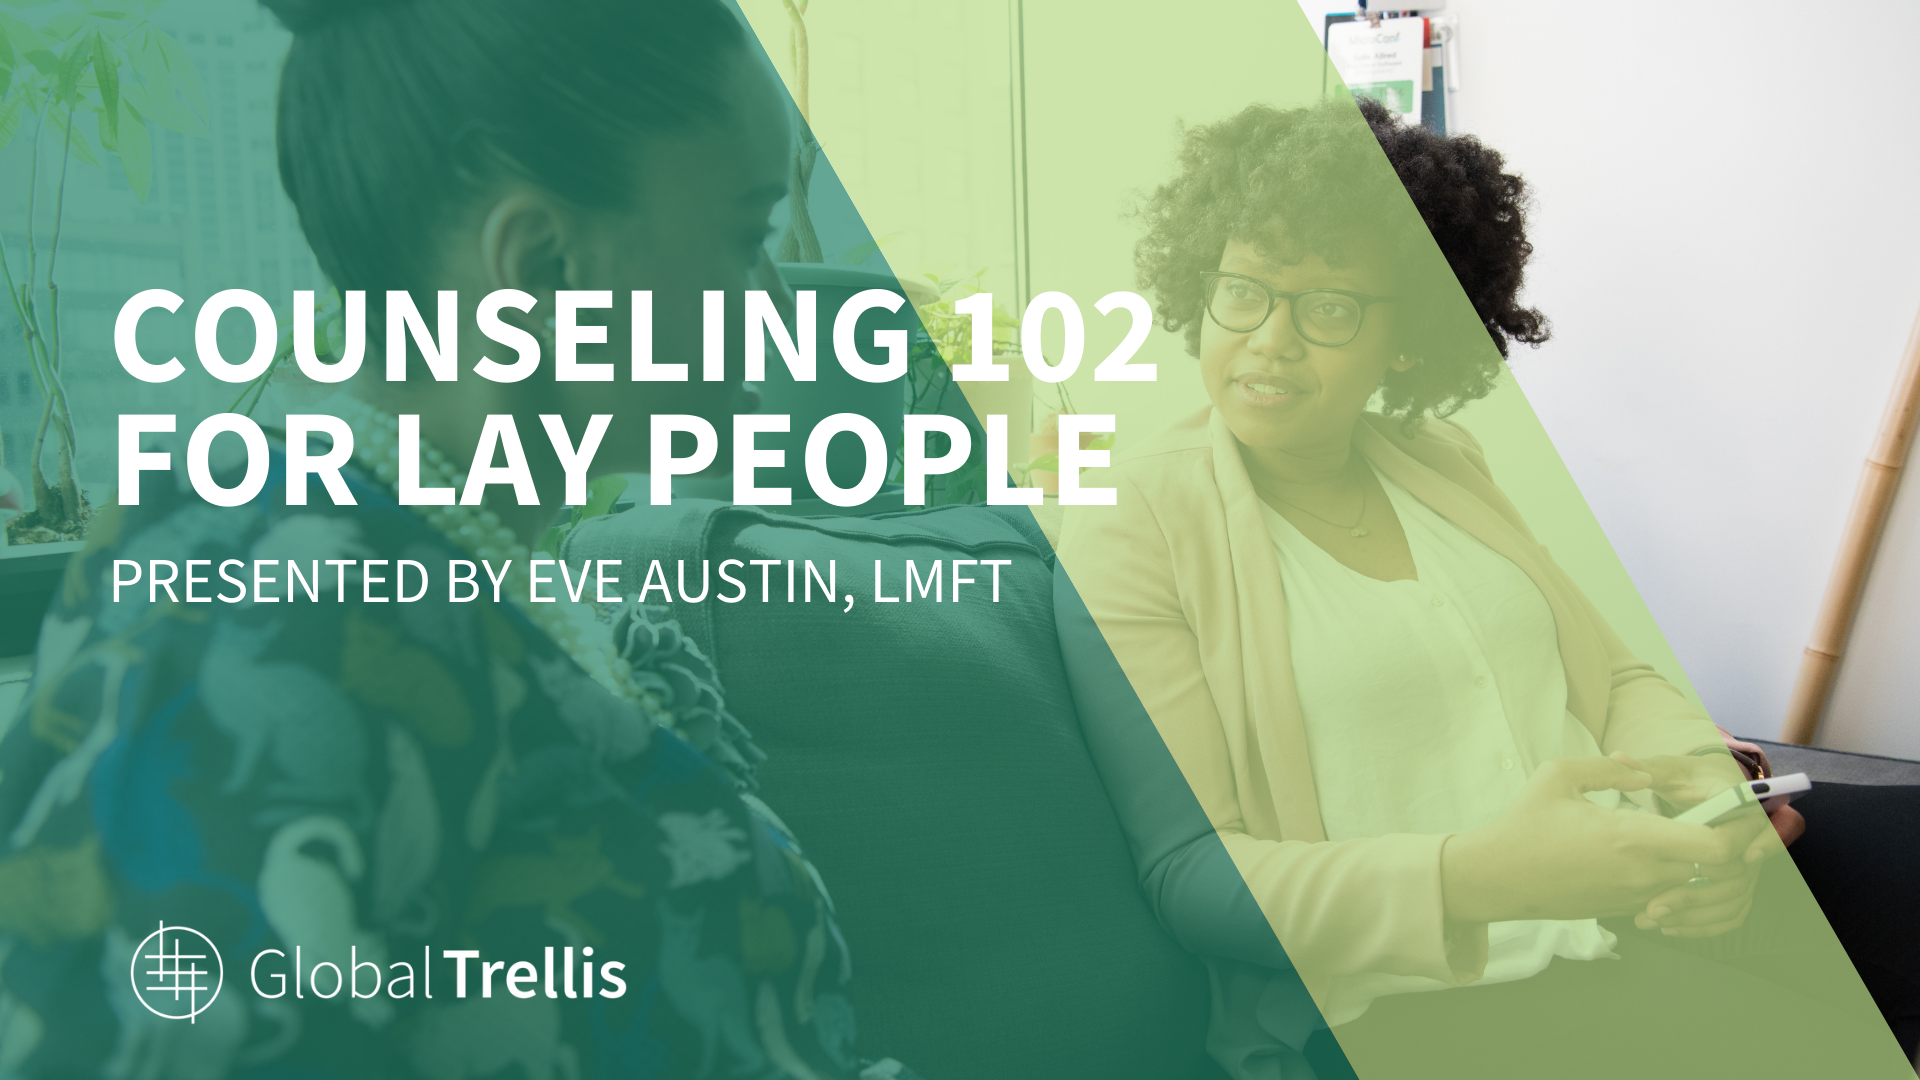 Counseling 102 For Lay People